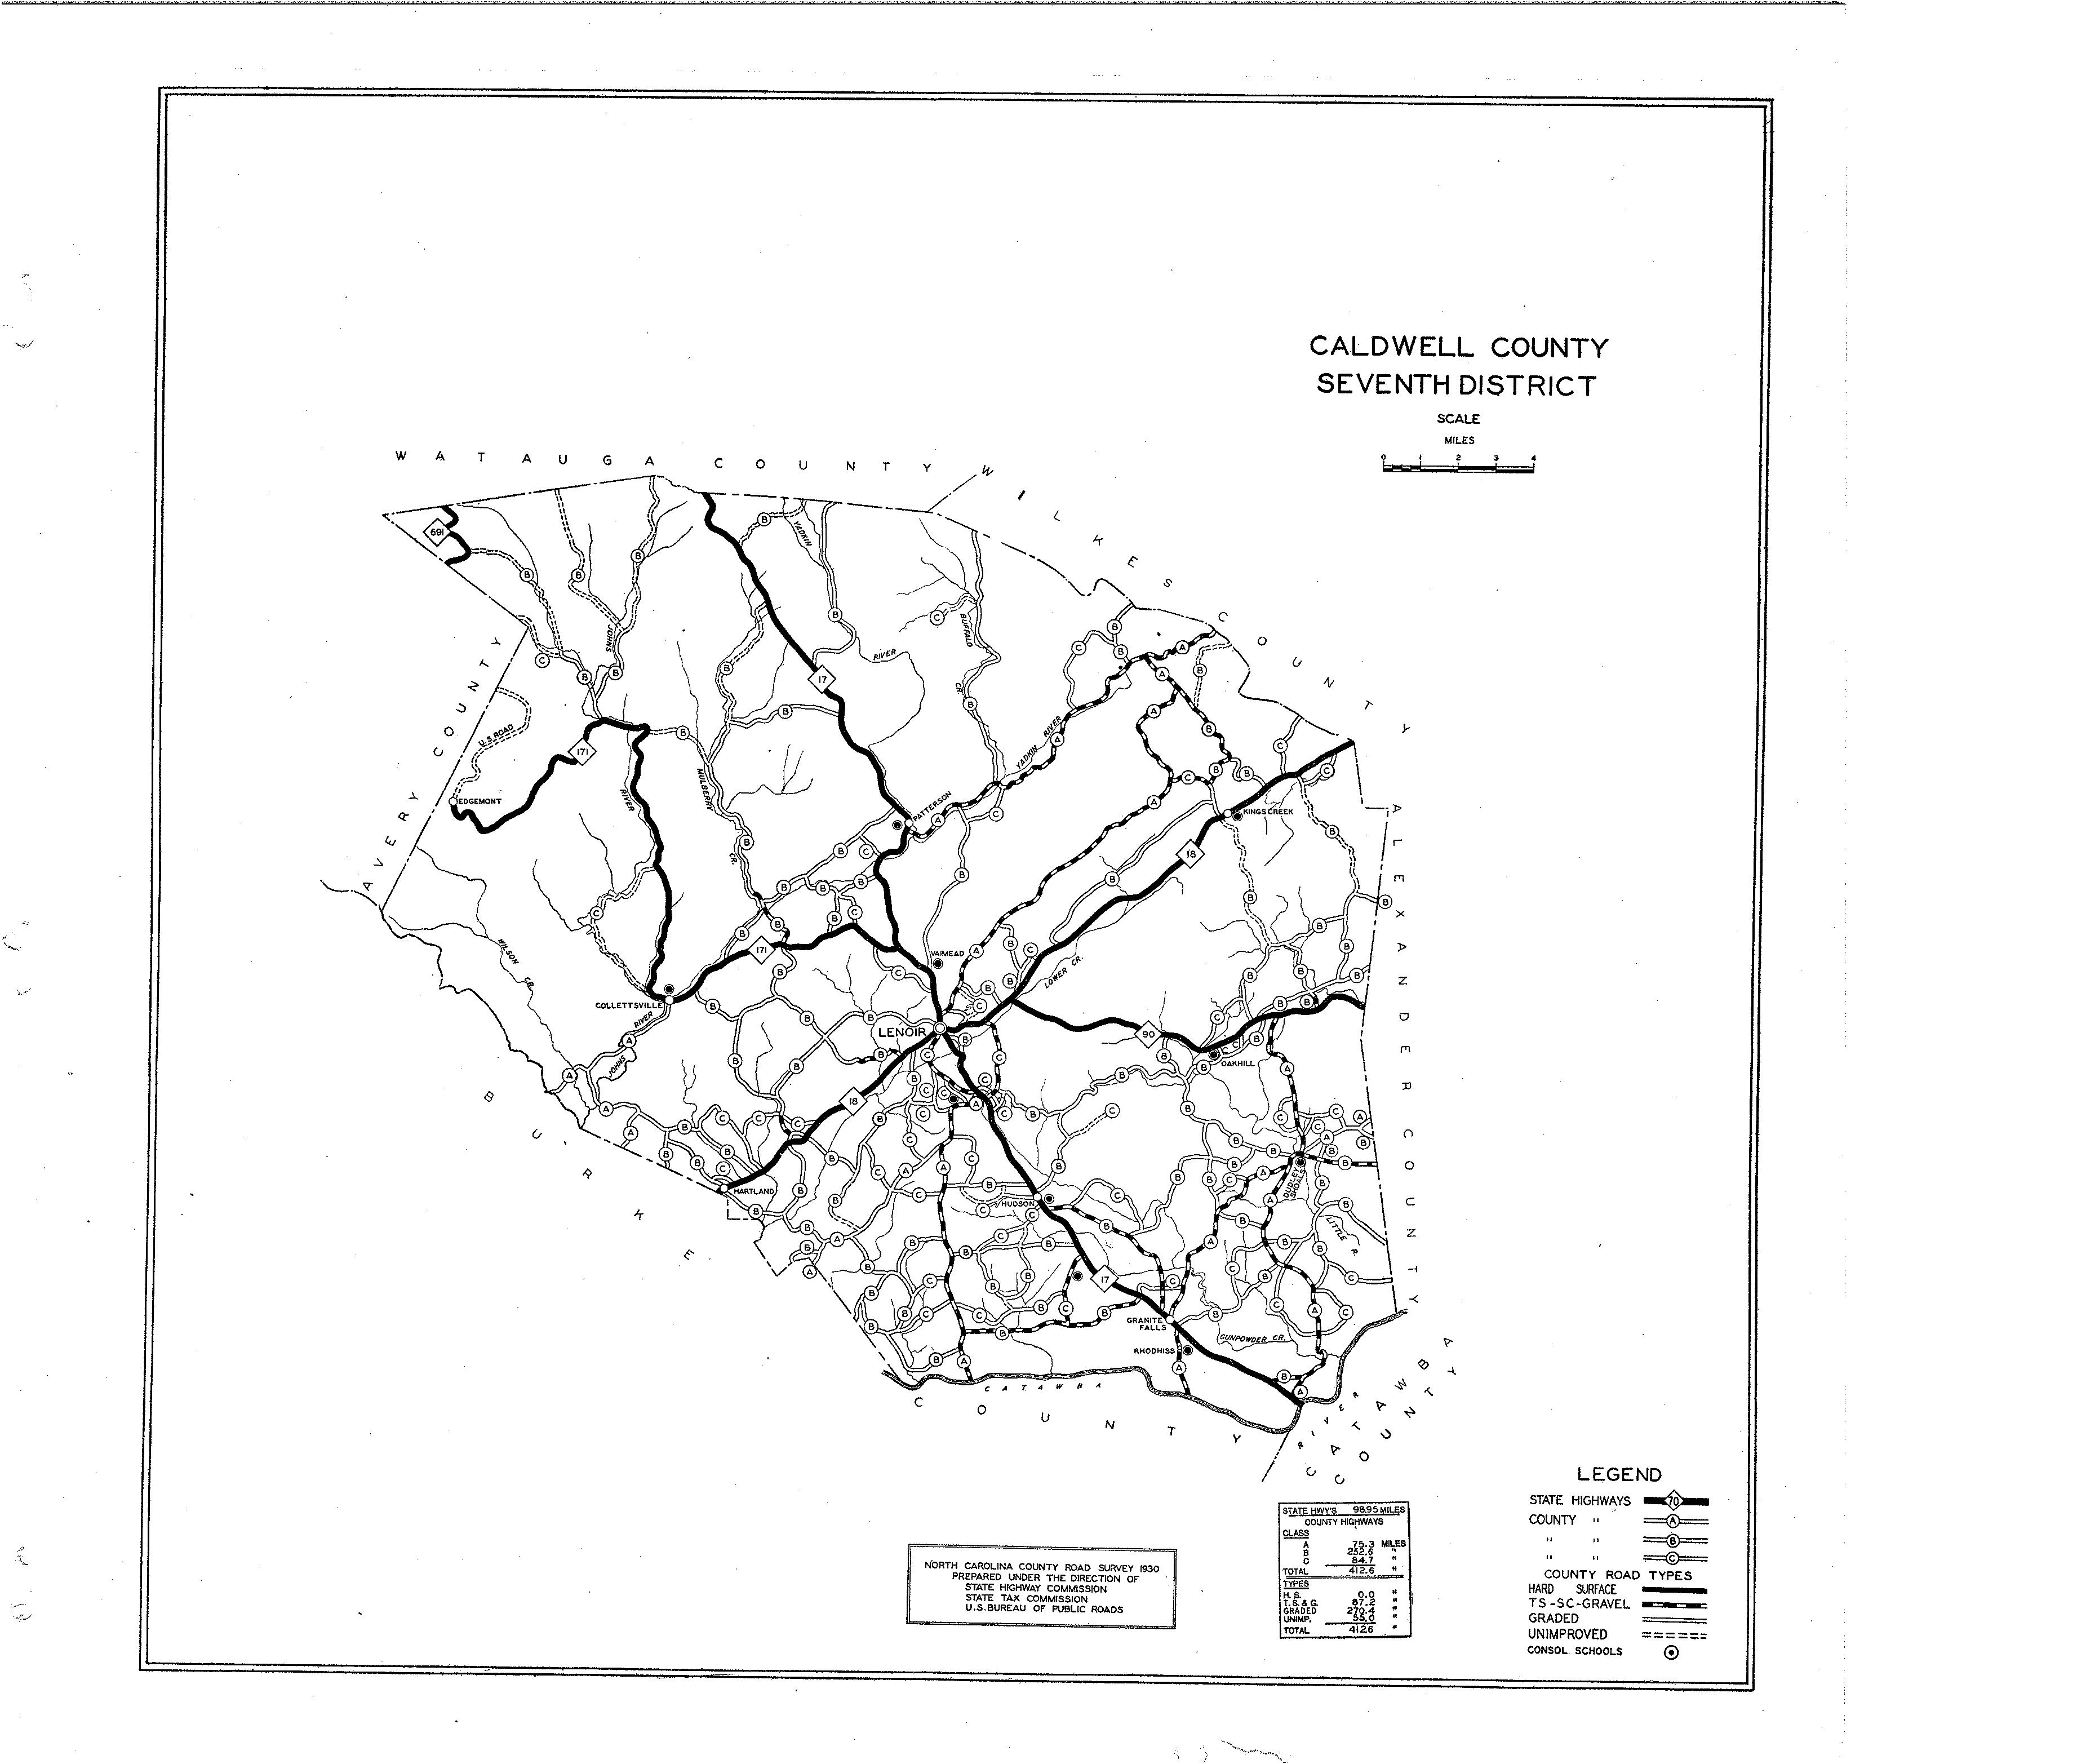 Caldwell County Maps on